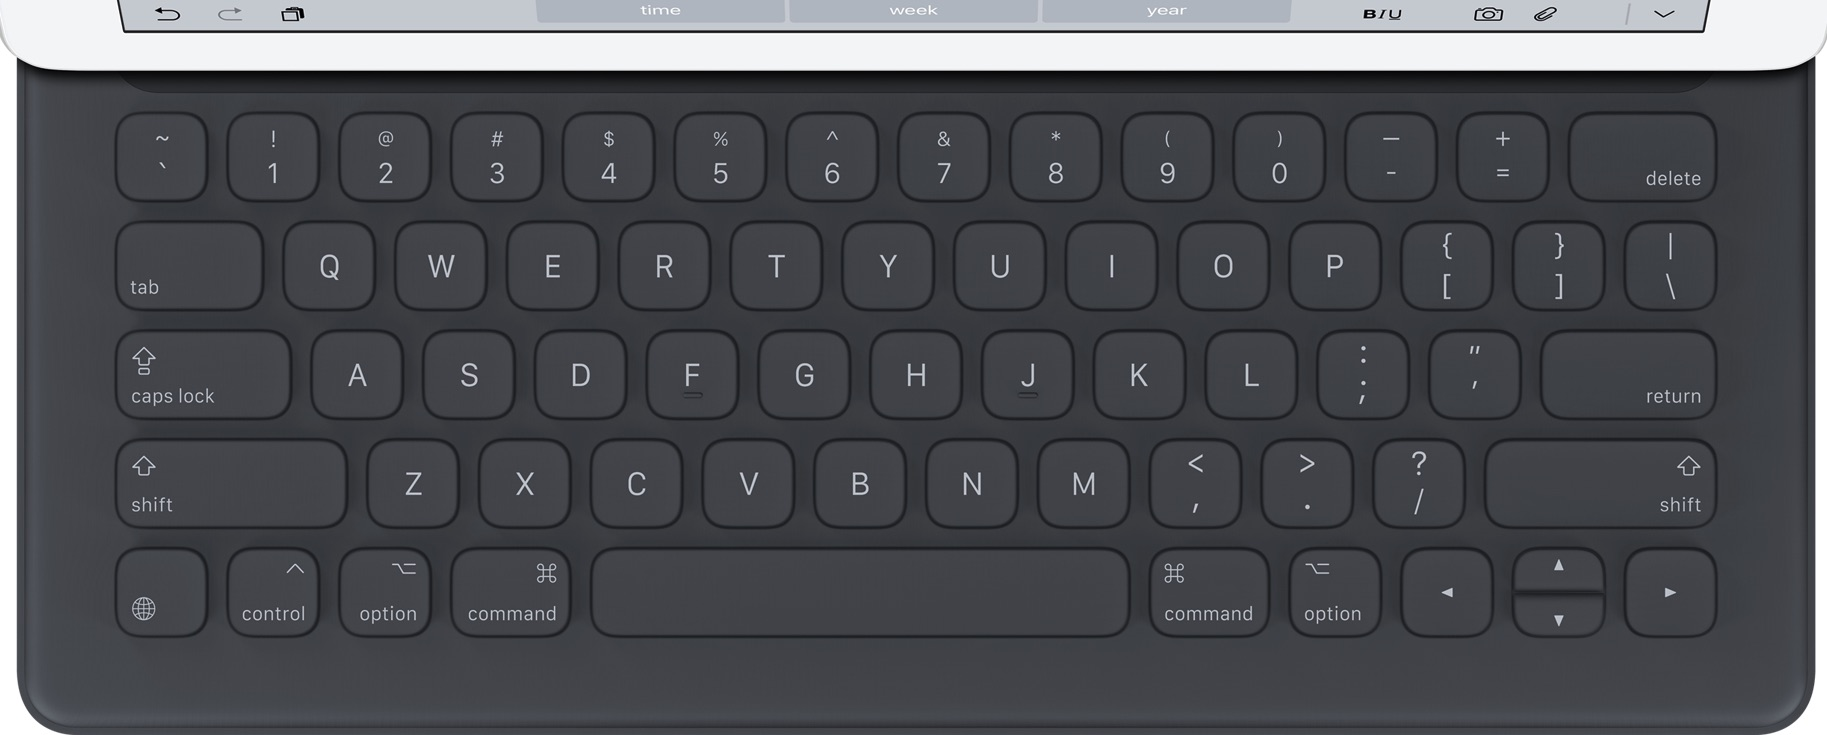 實際尺寸圖像 iPad Smart Keyboard 。